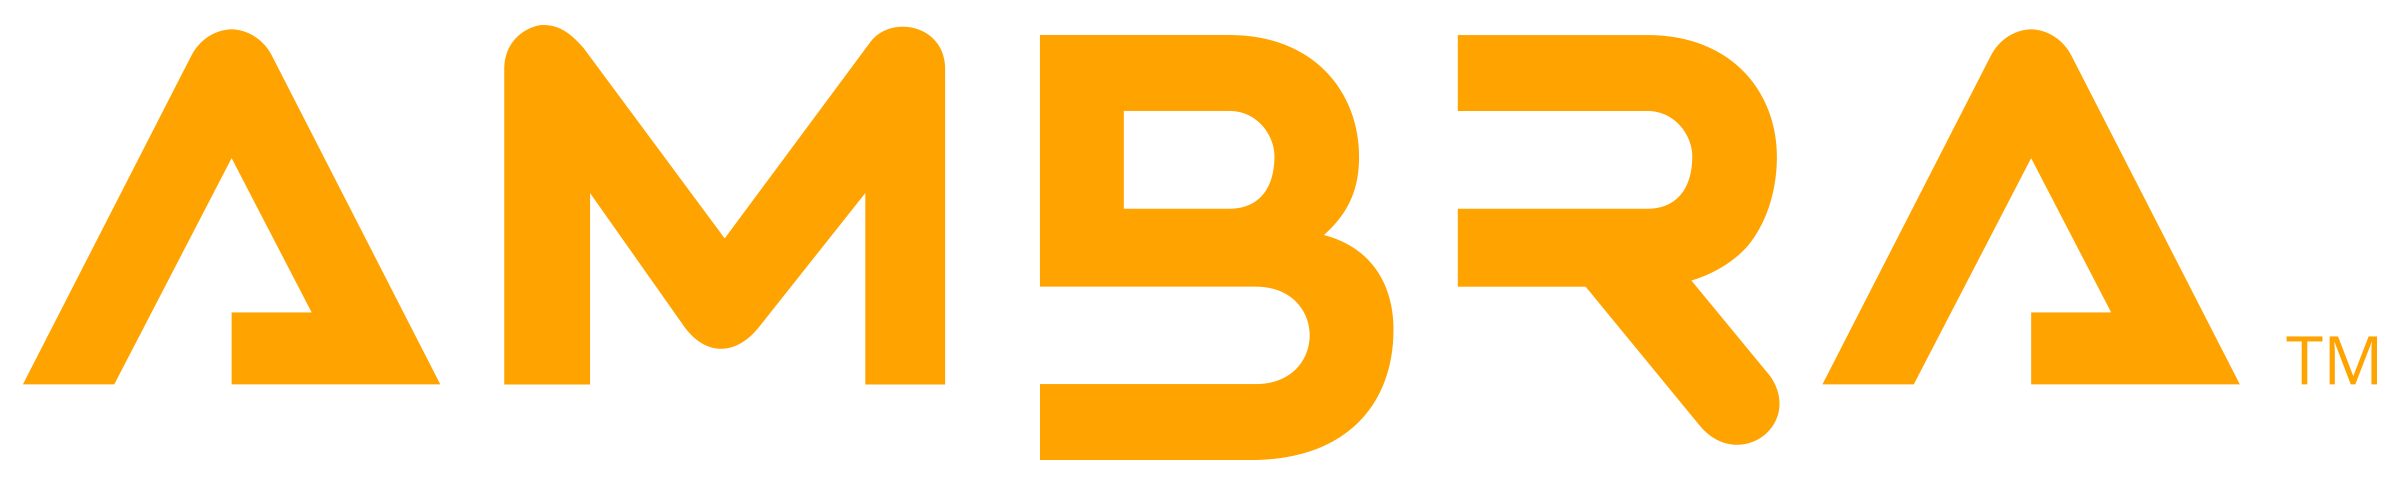 AMBRA_logo_Orange_RGB.png